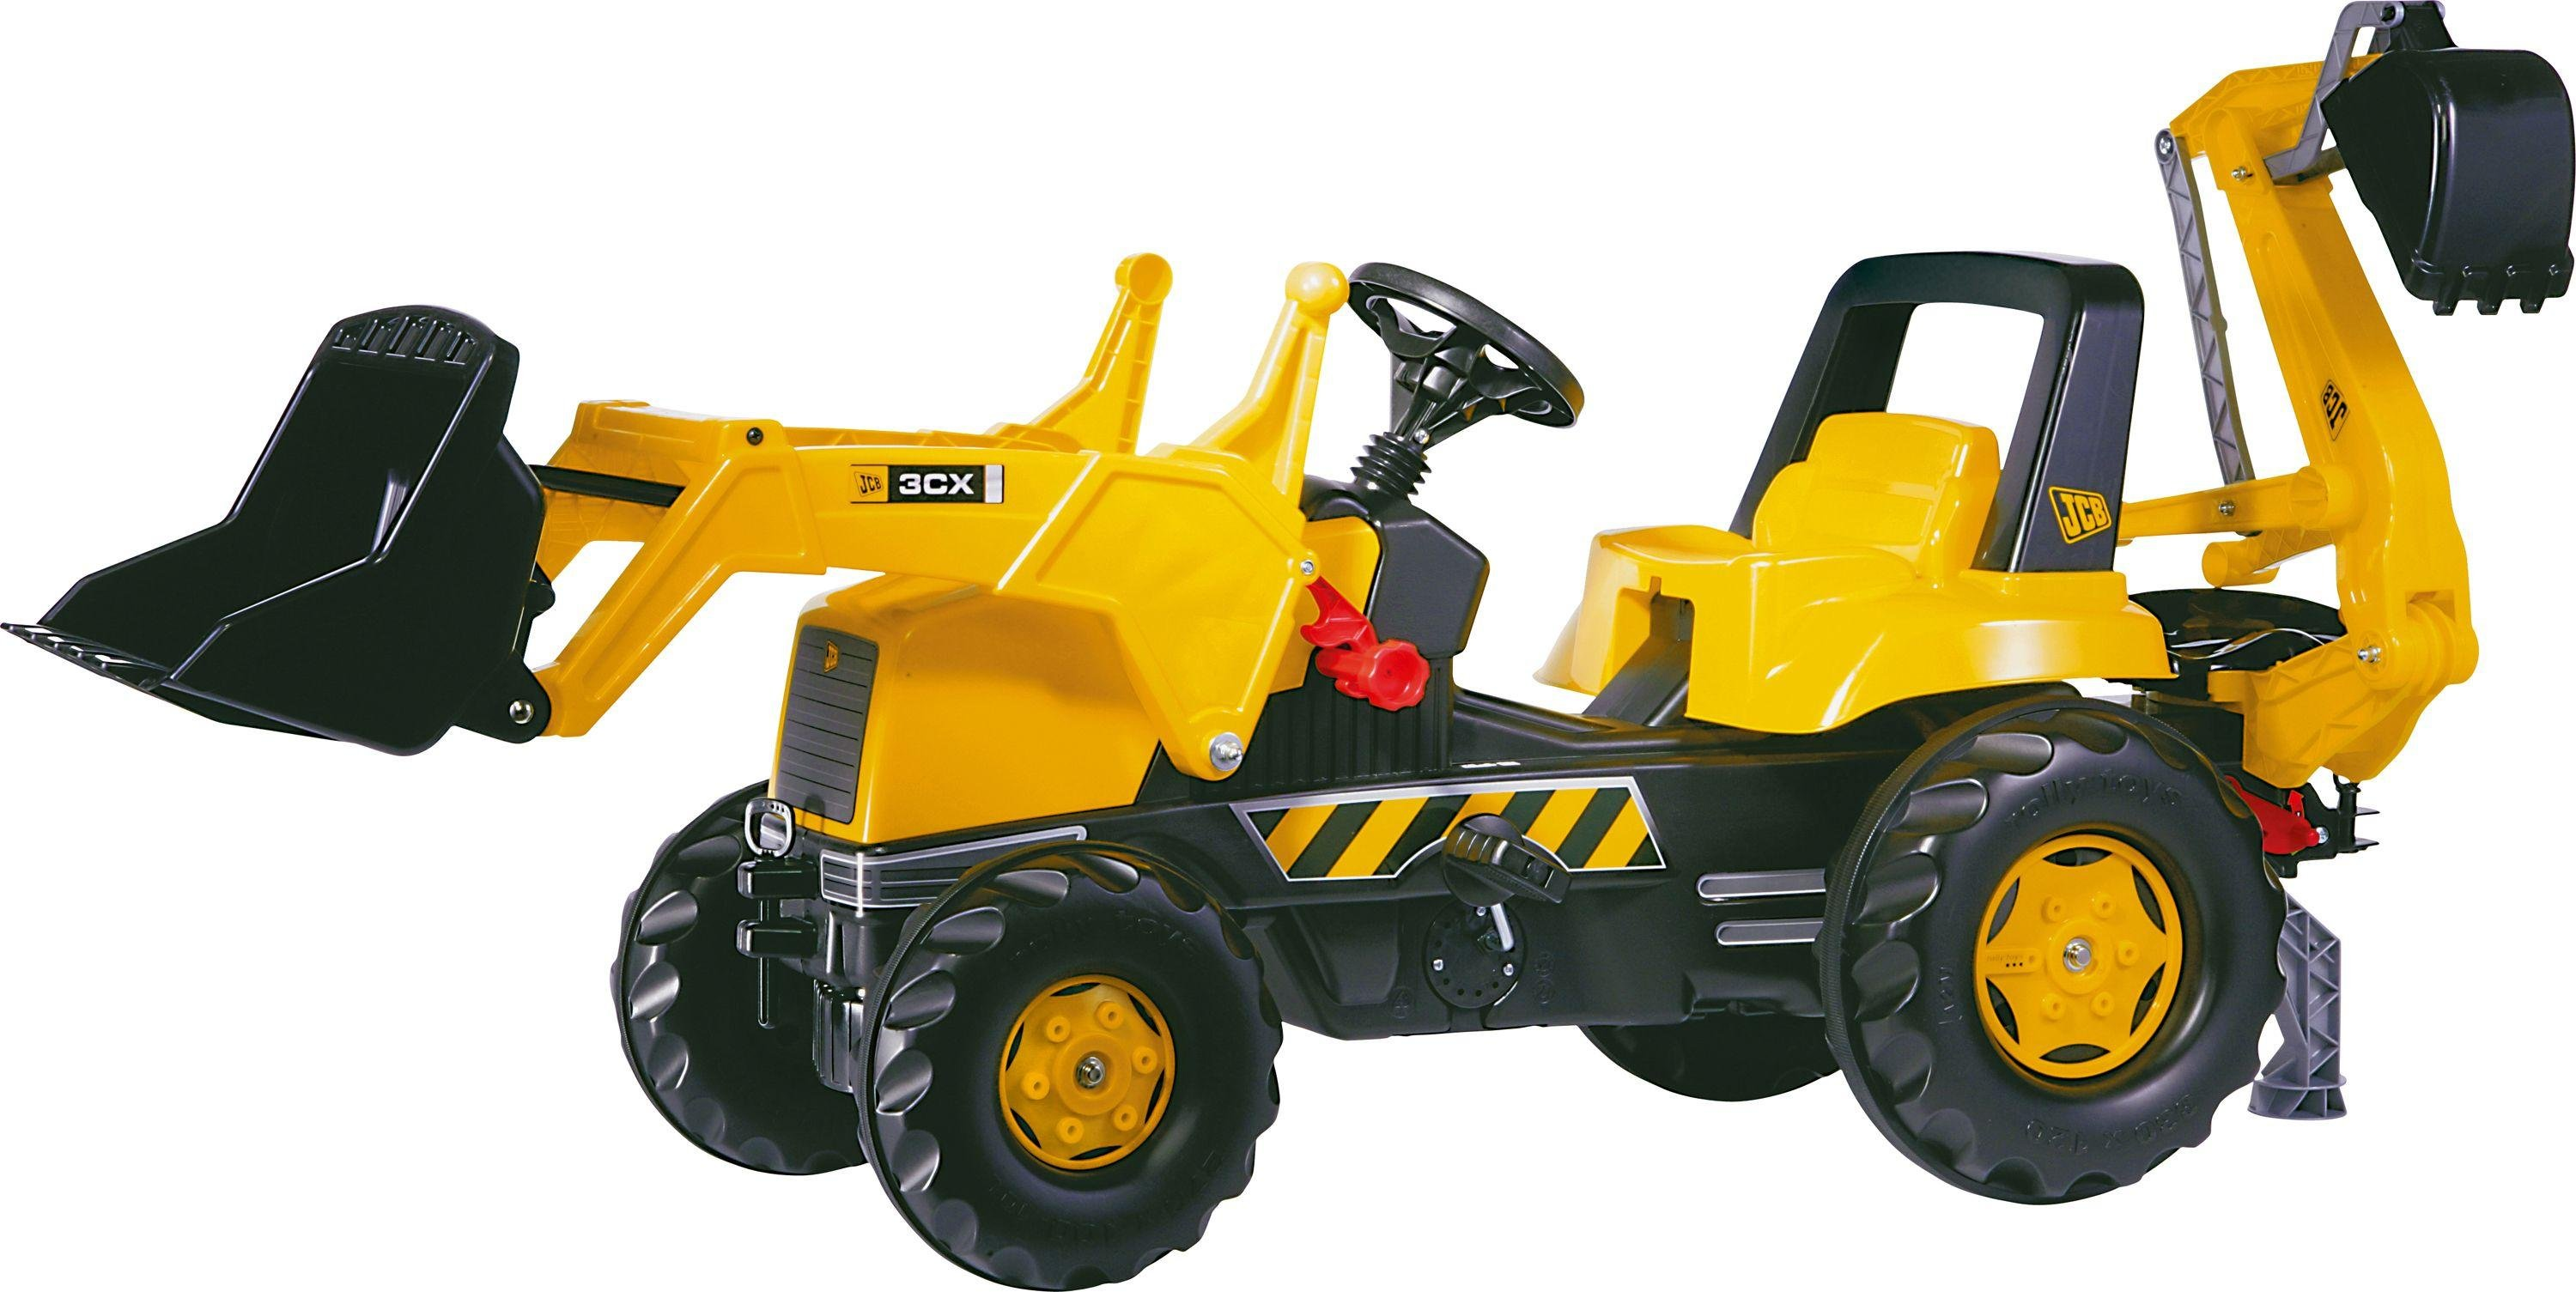 rolly-toys-jcb-tractor-with-loader-excavator